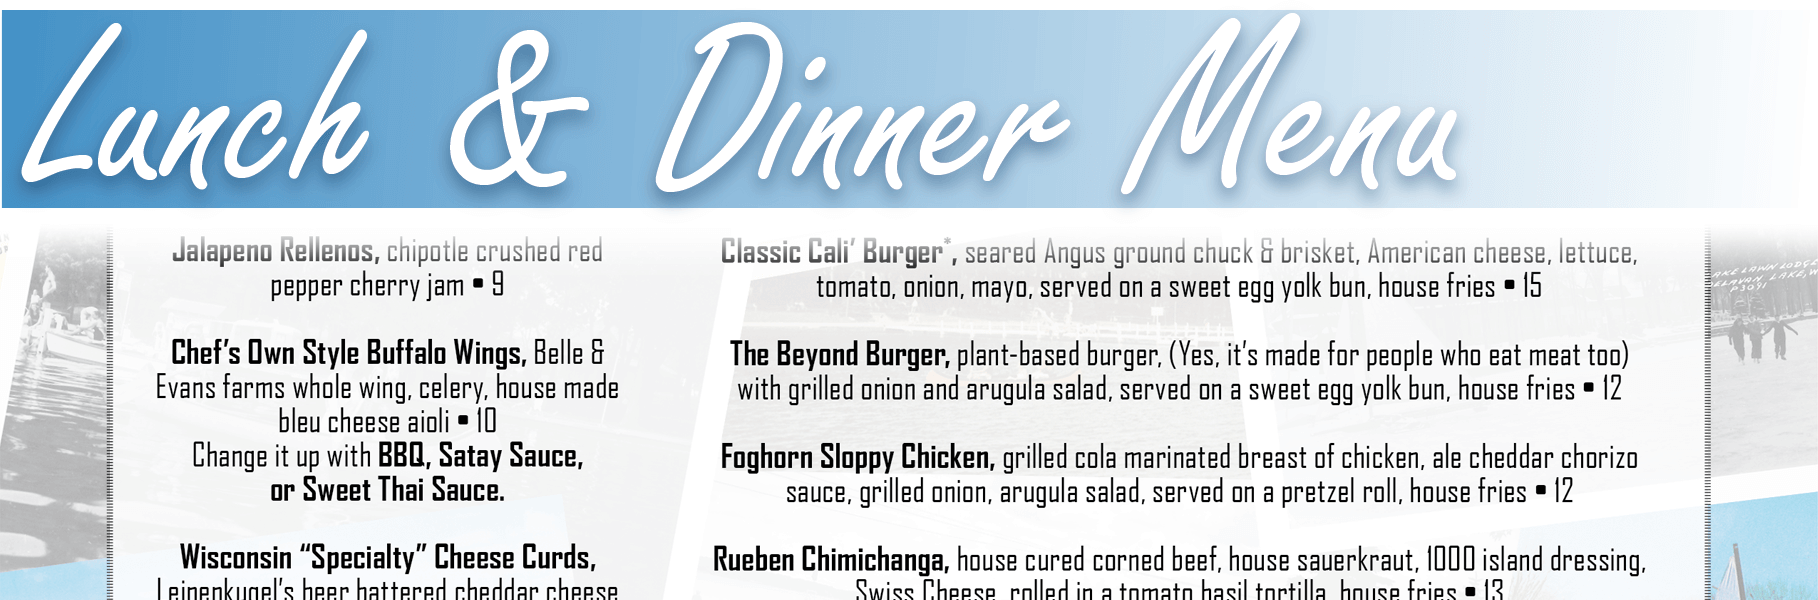 Lunch and Dinner Menu header